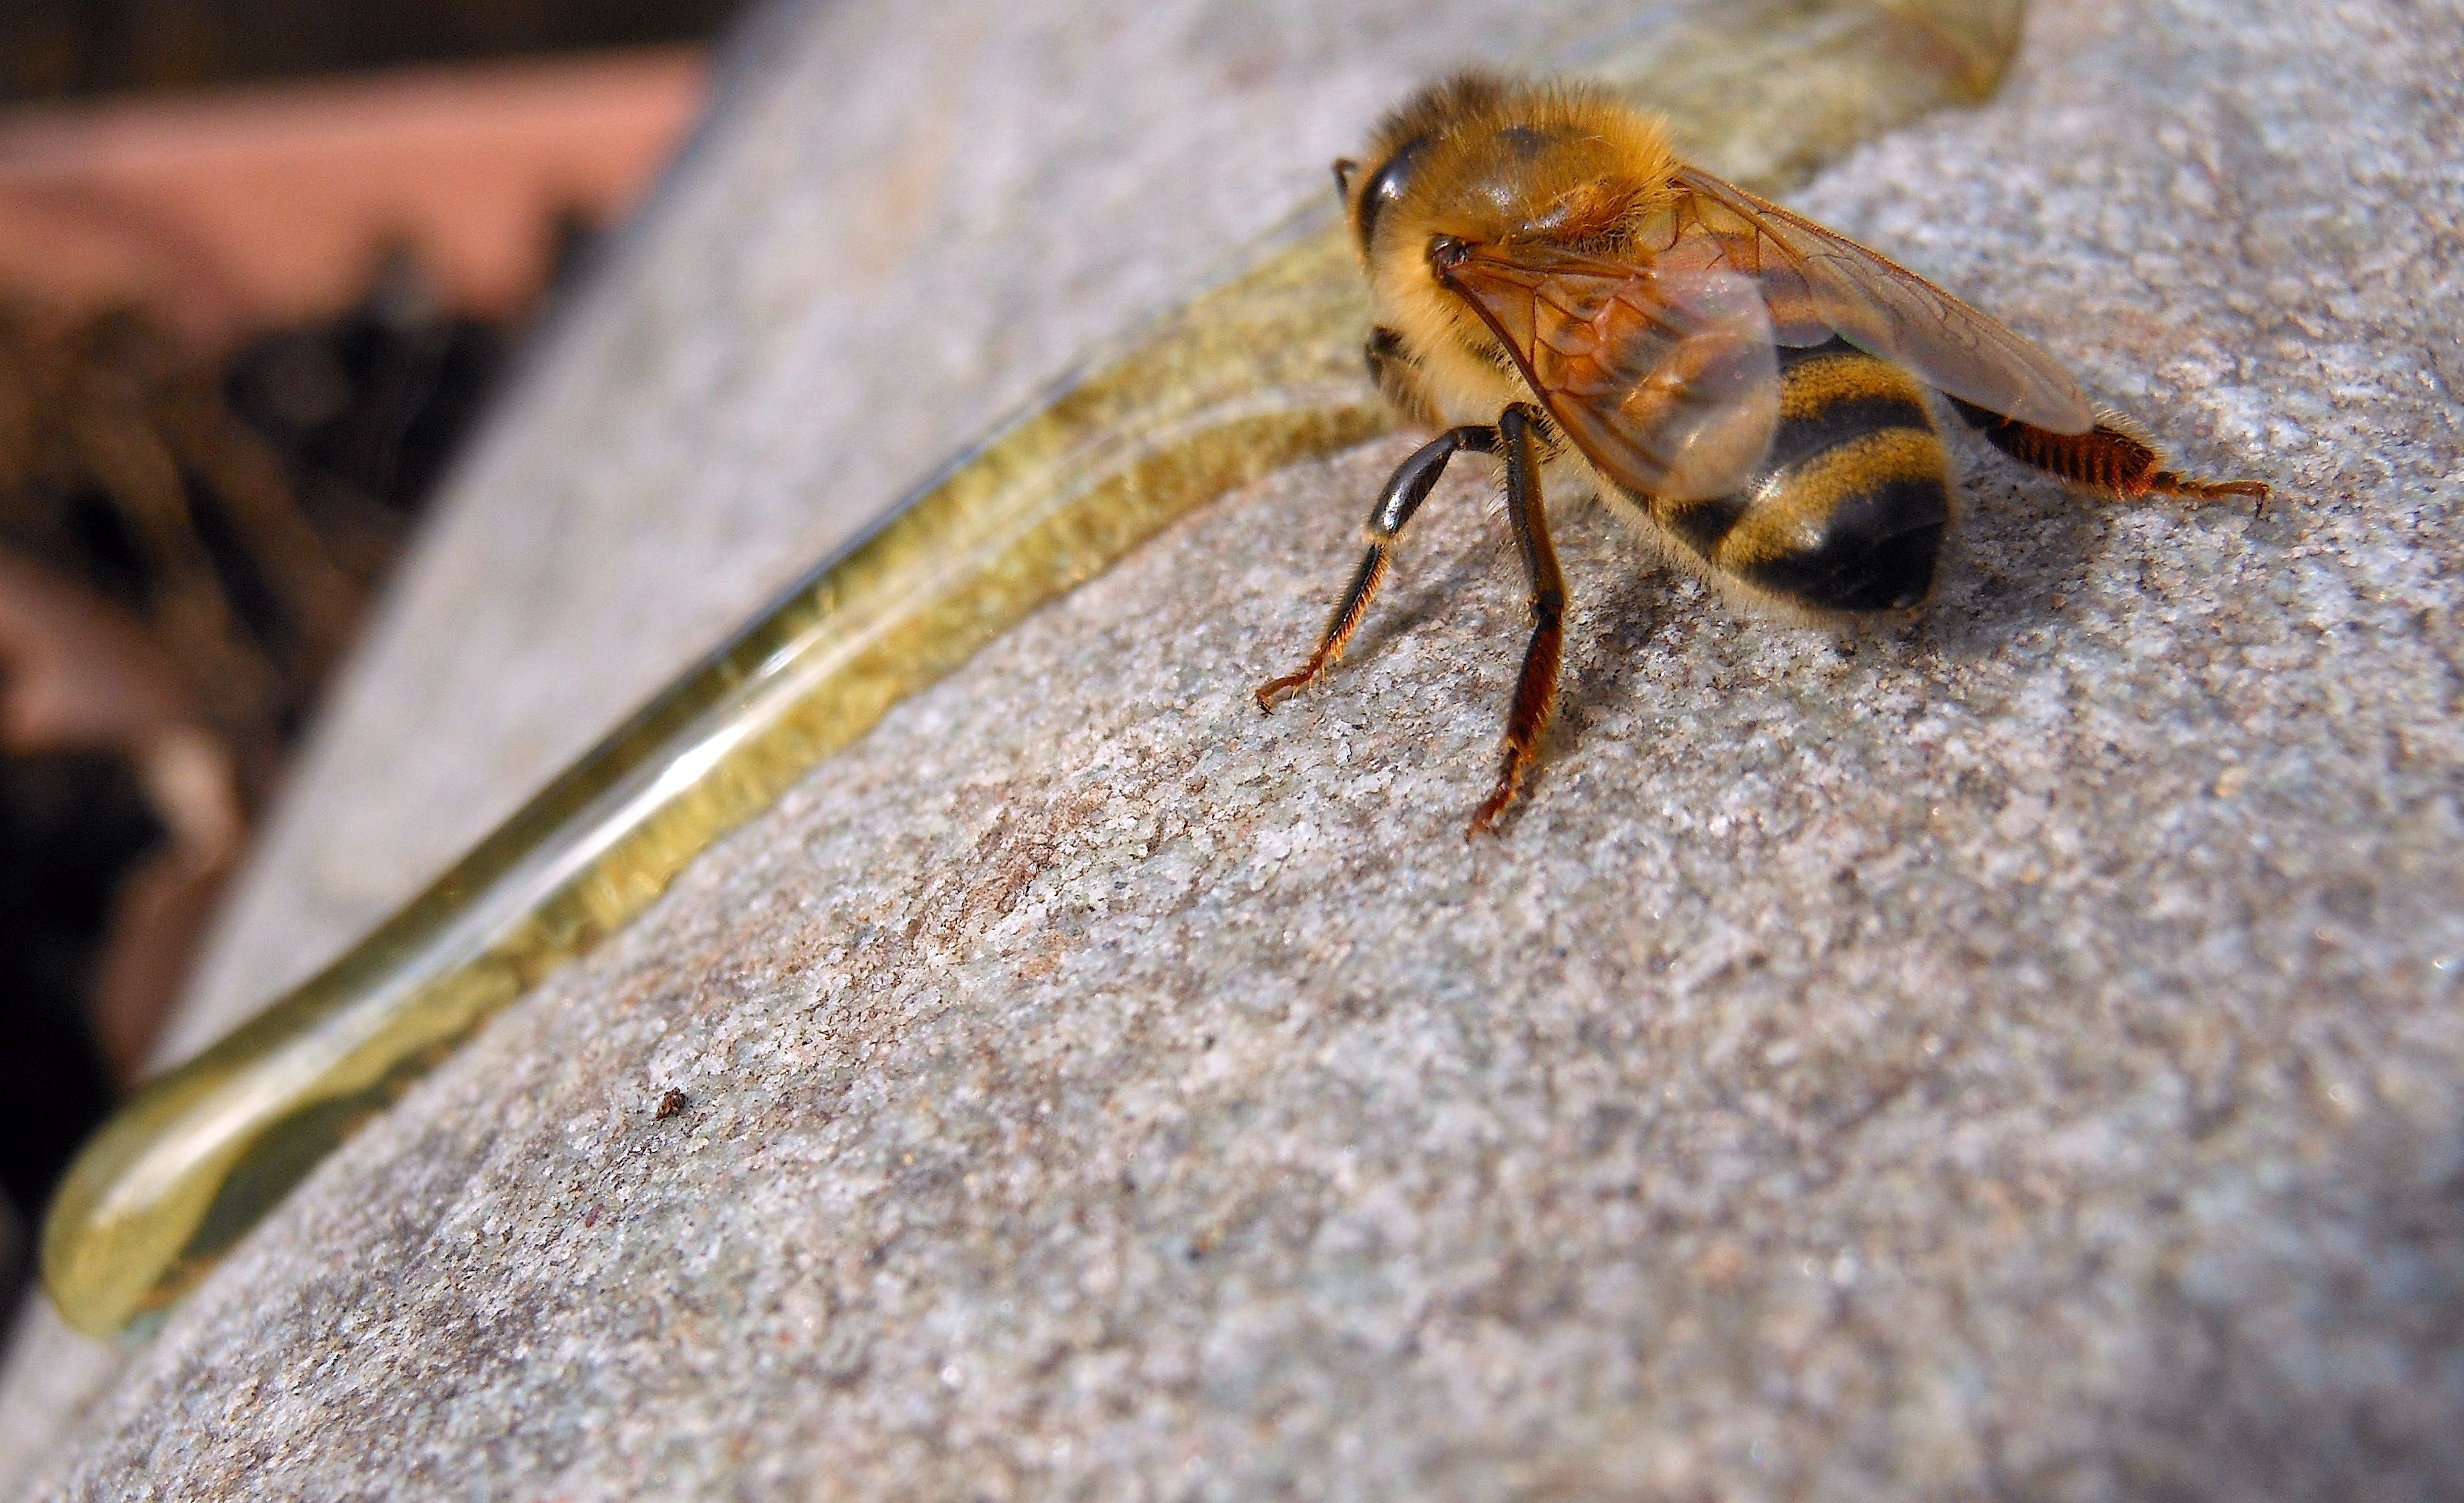 one of my bees, came out on new years day, she looked weak so i poured some honey on a rock and she drank for a few minutes and flew off...